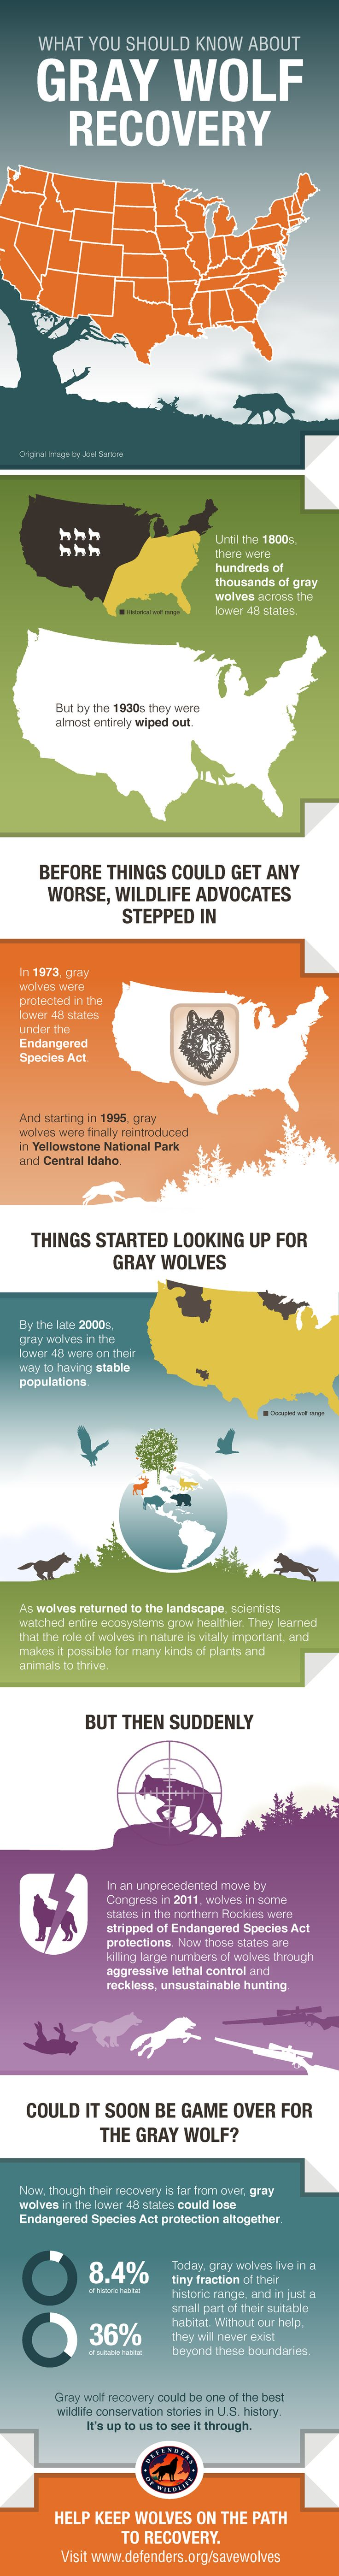 Gray wolf recovery could be one of America's best wildlife conservation success stories – but only if we see it through.